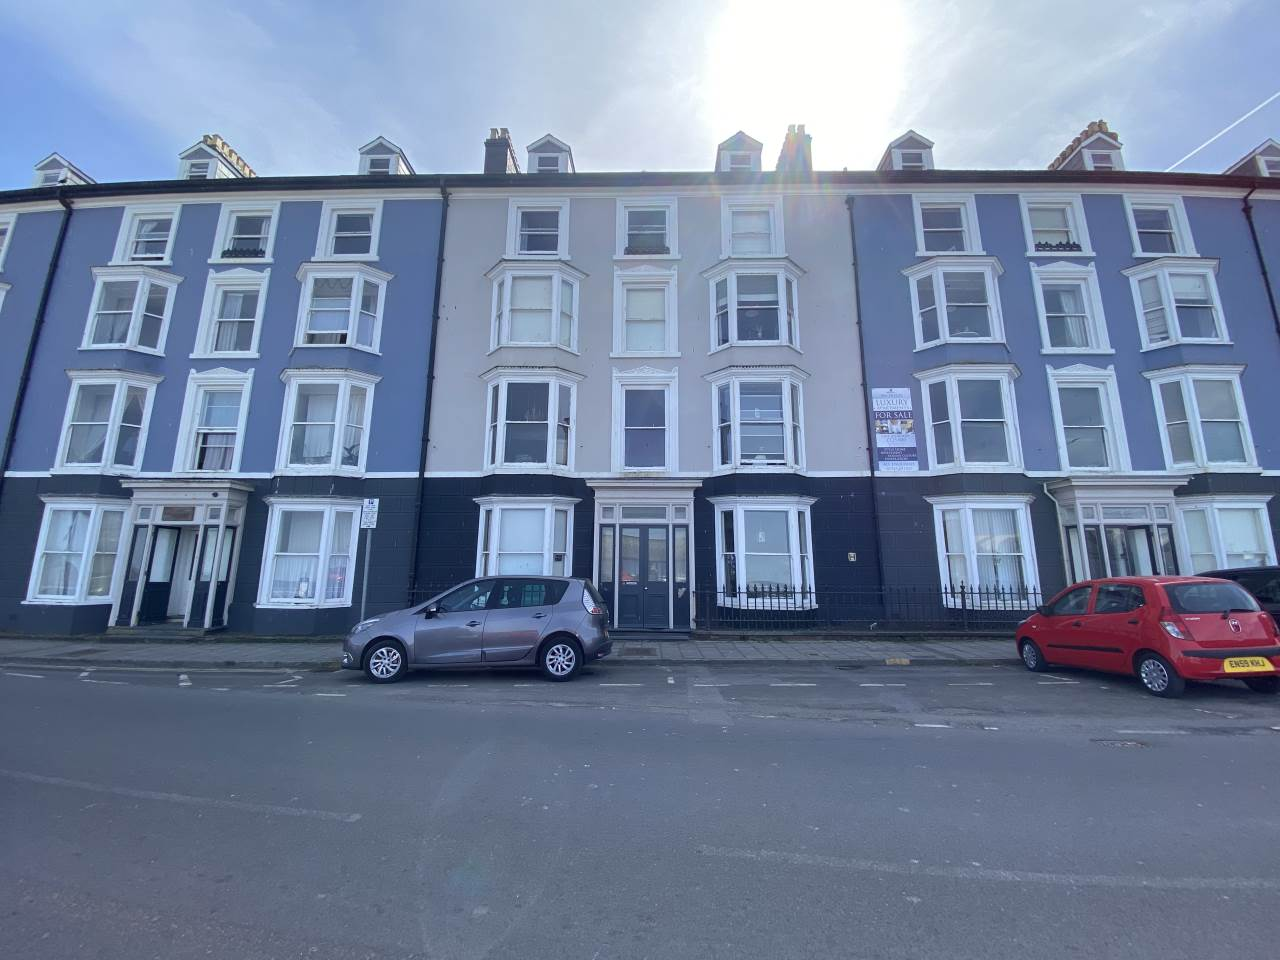 2 bed flat for sale in Flat 4, 9 Marine Terrace, Aberystwyth - Property Image 1